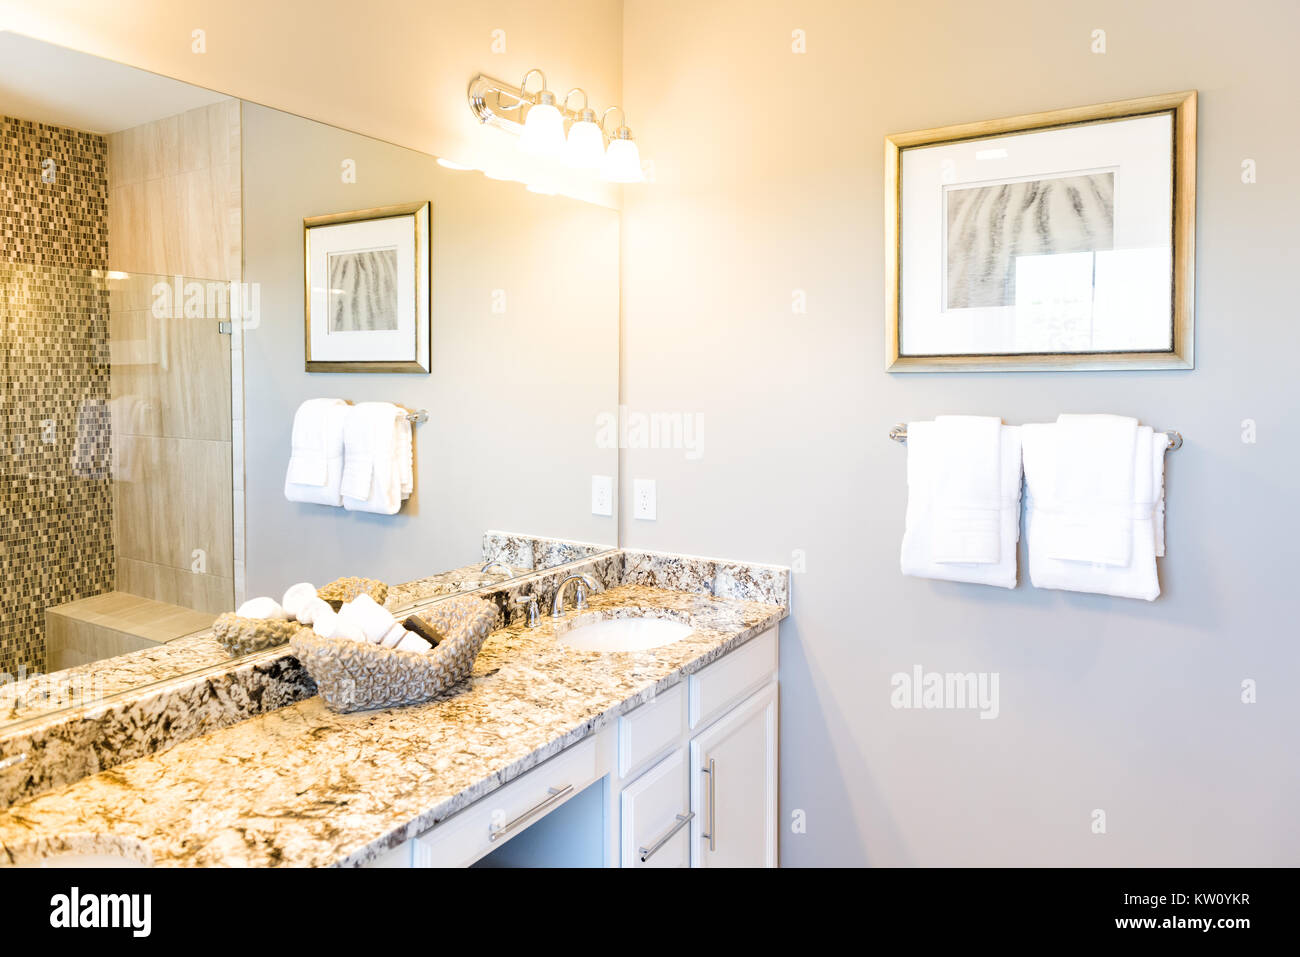 Hand Towels In Woven Basket In Bathroom Granite Countertop With Sink And  Mirror In Staging Model House Or Apartment, Reflection Of Shower